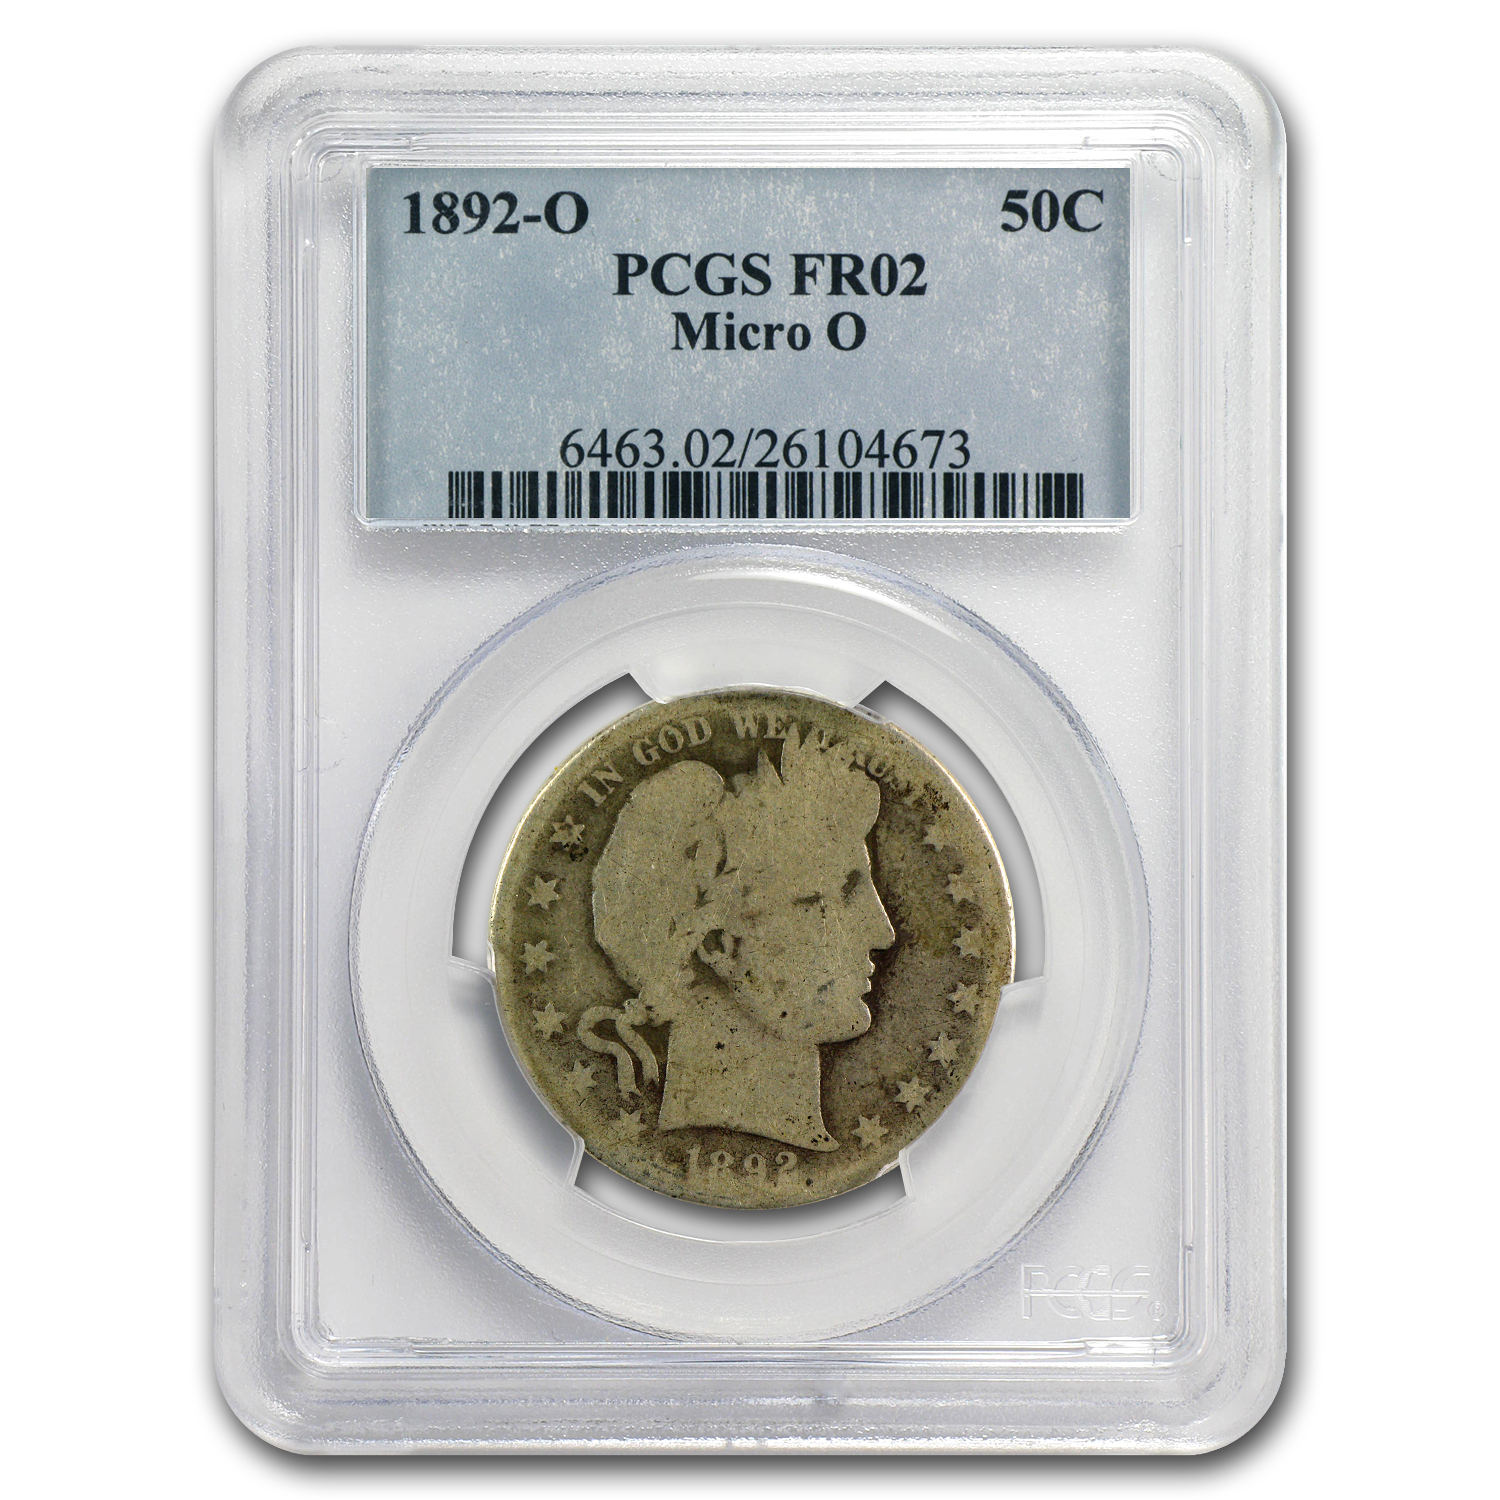 1892-O Micro O PCGS Fair-2 Barber Half Dollar